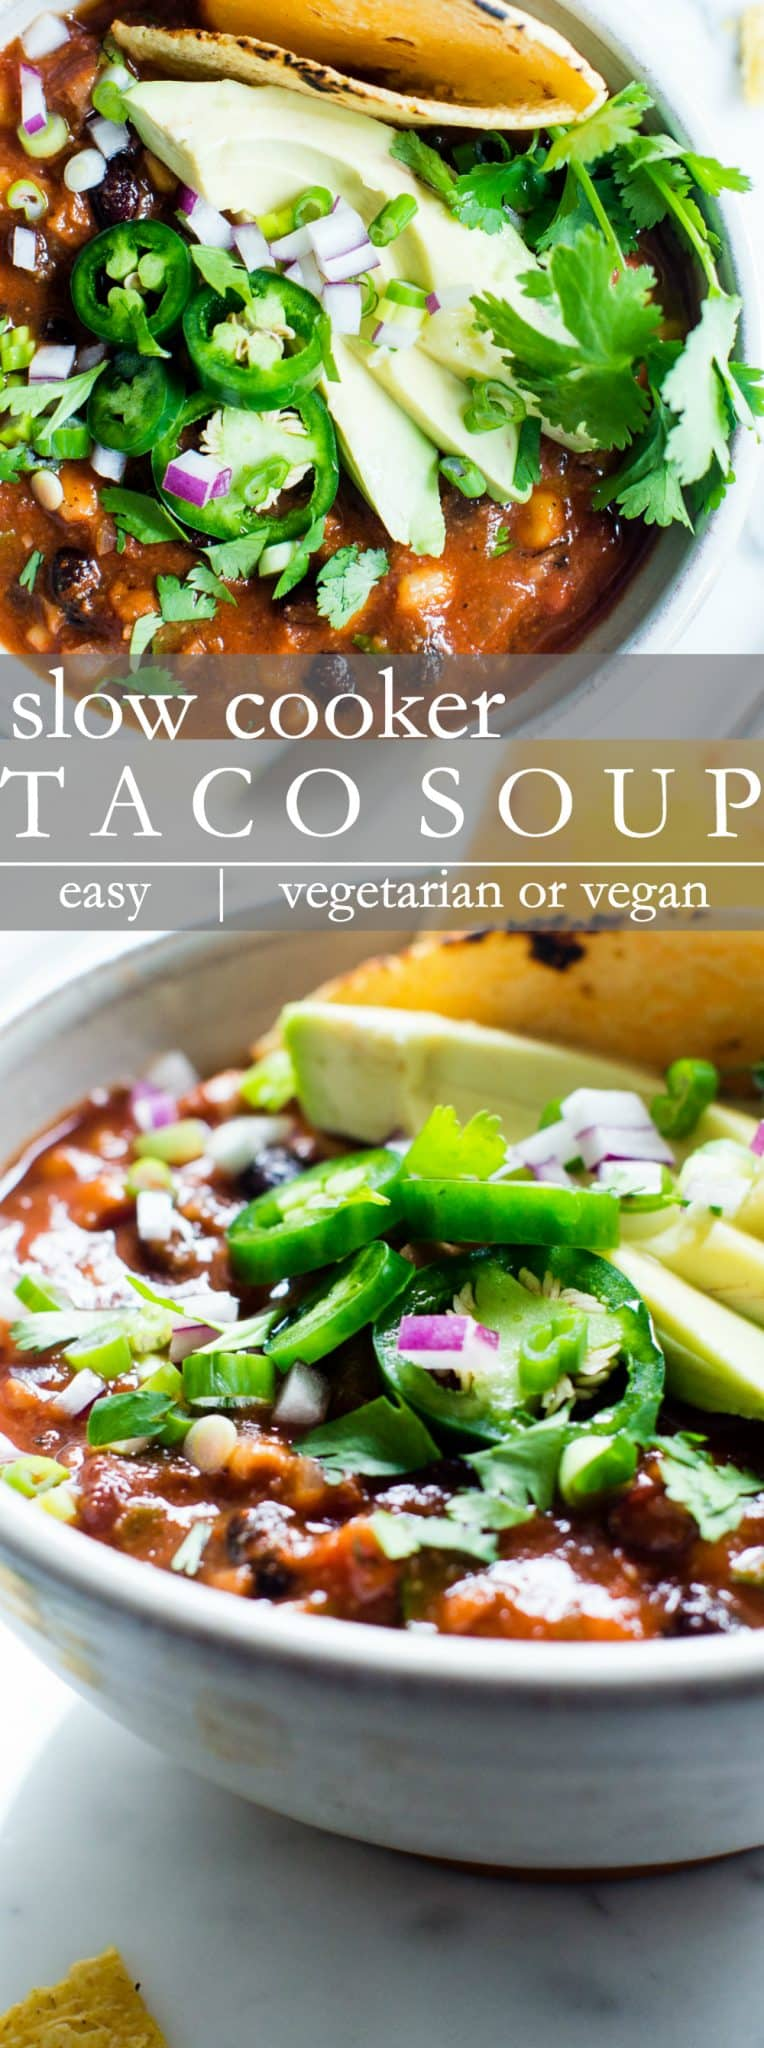 So easy to whip up! Set it and forget it, Slow Cooker Vegetarian Taco Soup! Rich, thick and hearty, packed with warming spices, beans and corn. It's freezer friendly too! #TacoSoup #VeganTacoSoup #VegetarianTacoSoup #HealthytacoSoup #SlowCookerTacoSoup